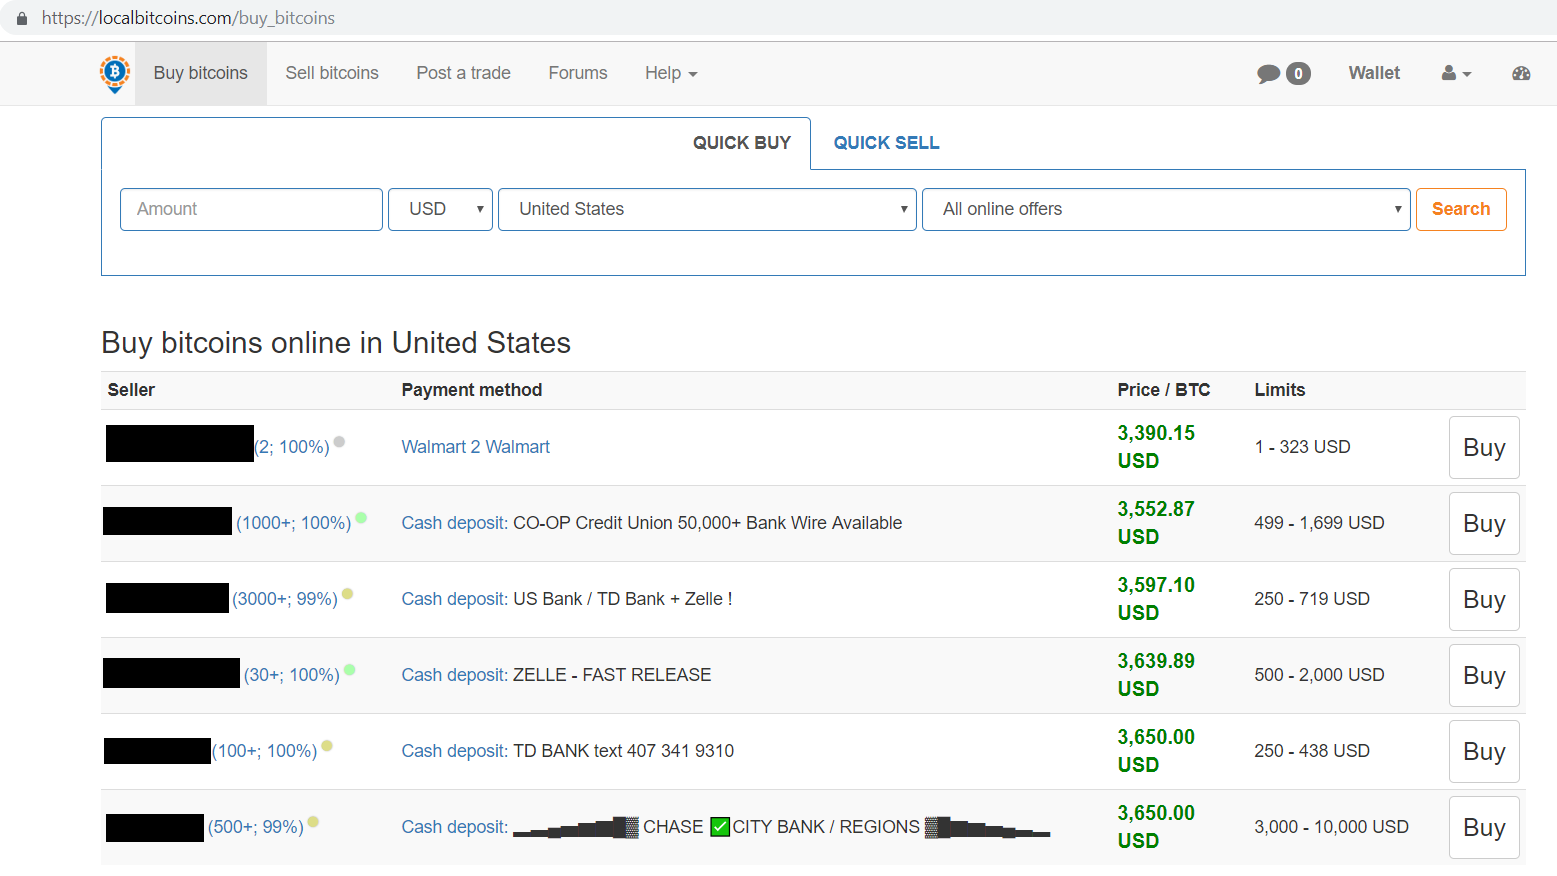 Buy bitcoins online in United States results screen.